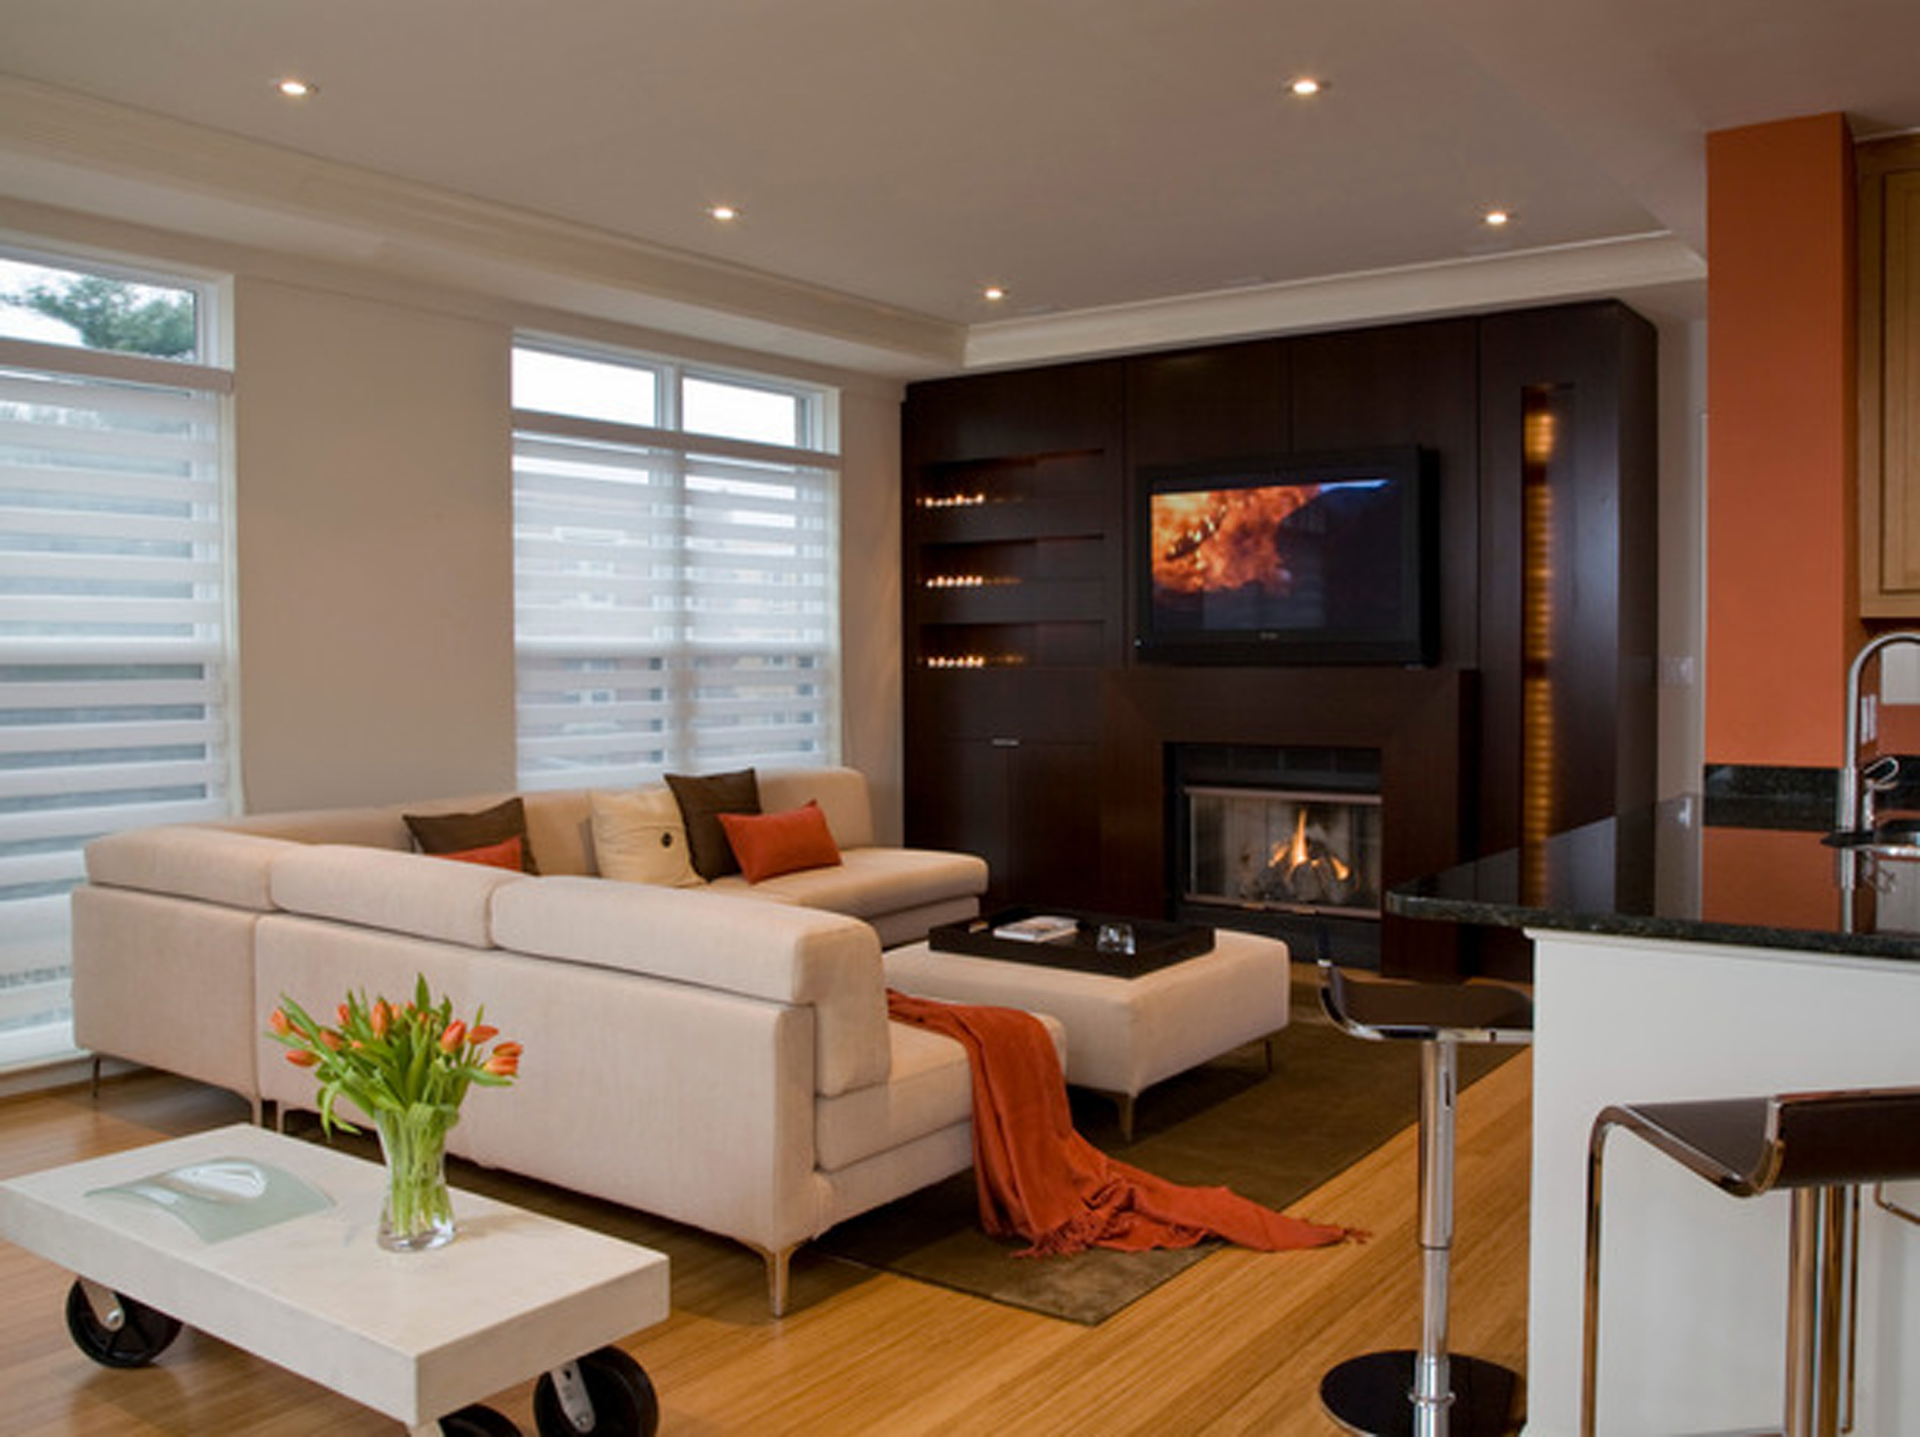 Outstanding Modern Living Room with Fireplace and TV 1920 x 1437 · 865 kB · jpeg